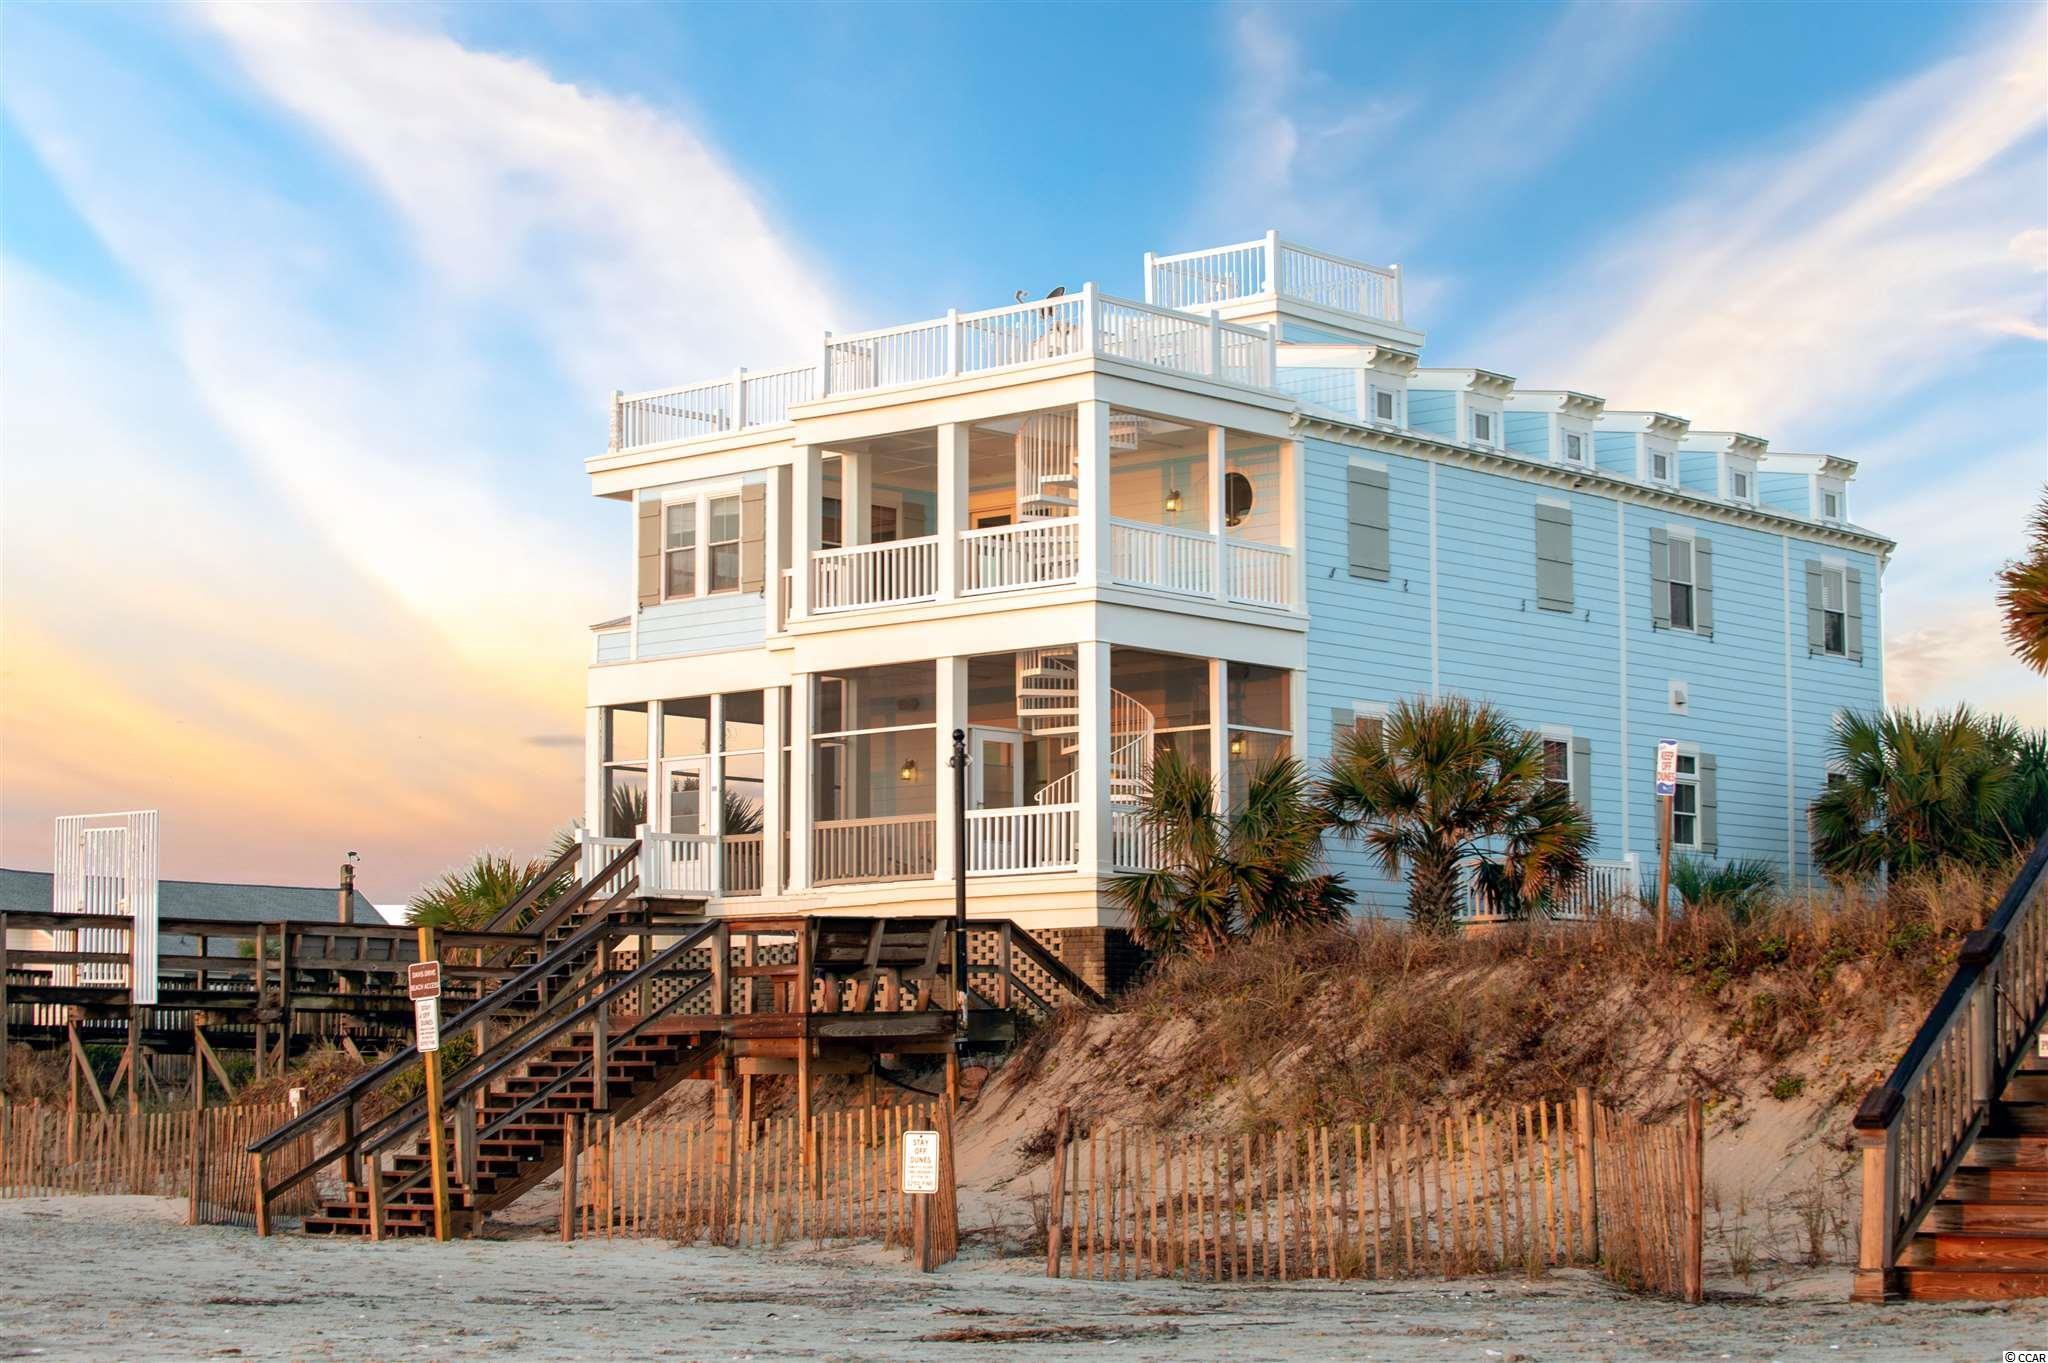 "An unparalleled opportunity to own a stunning oceanfront, 5 bedroom, 4 bath home constructed in 2008 with direct, private, gated access over the dunes to the Pawleys Island beach (which experienced a substantial renovation 2019-2020).    Completely reconstructed from the ground up in 2007-2008 and repainted in its original ""coastal blue"" color in 2019, 296A Atlantic Avenue offers numerous amenities and spacious indoor and outdoor living with unmatched beach and ocean views. In addition to its 3365 sq. ft., there are 2174 sq. ft. of screened porches and covered and uncovered decks. The front (oceanside) porch contains a winding external staircase providing access to the master bedroom front deck, upper decks and crow's nest allowing 360 degree views.   The residence's siding is Hardiplank with a 50 year, transferable warranty, porches and decks are TimberTech with a 25 year warranty, and sliding glass doors and windows are impact and wind rated. The roof is metal and pitched, which allows the unique ""fish head"" rafters to be visible from three sides and the upper decks. The site is heavily landscaped, including 17 mature palm trees (33 including the vacant lot), and is fully irrigated.   The street level contains a parking apron and four car garage with enclosed storage areas and a roughed-in elevator shaft (which continues upward to the first and second living areas). The house entrance stairway is accessed directly through the garage or through an entry courtyard.   All of the first level living areas have 10 foot high ceilings. This level contains a great room with sliding glass doors fronting the beach and ocean, a gas fireplace and a wet bar with ice machine and wine rack, ceiling fans, a gas fireplace and extensive dark wood cabinets and built-in bookshelves, accentuating the light oak flooring of the great room and kitchen. The kitchen contains a gas range, electric oven and microwave, custom cabinets, center island and other extensive counter space. Kitchen and wet bar backsplashes are tiled to extend the soft tones and coastal feel of the first level living area. The laundry room appliances are built in, there is extensive cabinet and countertop space and a sink, and space for a second refrigerator is provided. The first floor also contains a carpeted large bedroom with a walk- in closet and adjacent sunroom and a full bath with tiled floors and shower.   The upper living contains the master suite, three additional bedrooms and two additional full baths. There are 10 foot ceilings in the master suite and 2 of the 3 other upper level bedrooms allowing soft tone upper track lighting as well as ceiling  lights with fans.  The bedrooms are carpeted, the baths are tiled, and hallway flooring is light oak complimenting the first level flooring.    The master suite contains a large bath with tiled shower and separate tub, large walk- in closet, and an office area. All upper bedrooms have extensive ocean views and direct access to the upper decks.   Mechanical systems are under contract to be periodically inspected, and, if necessary, upgraded twice annually.  HVAC and water heater closets are on both living areas, and additional HVAC equipment serving the upper level living area is in the accessible attic. A central vacuum system services all first and second level living areas.   296 A Atlantic Avenue presents a truly unique opportunity to own exceptional Pawleys Island beachfront property! Furnishings are negotiable."